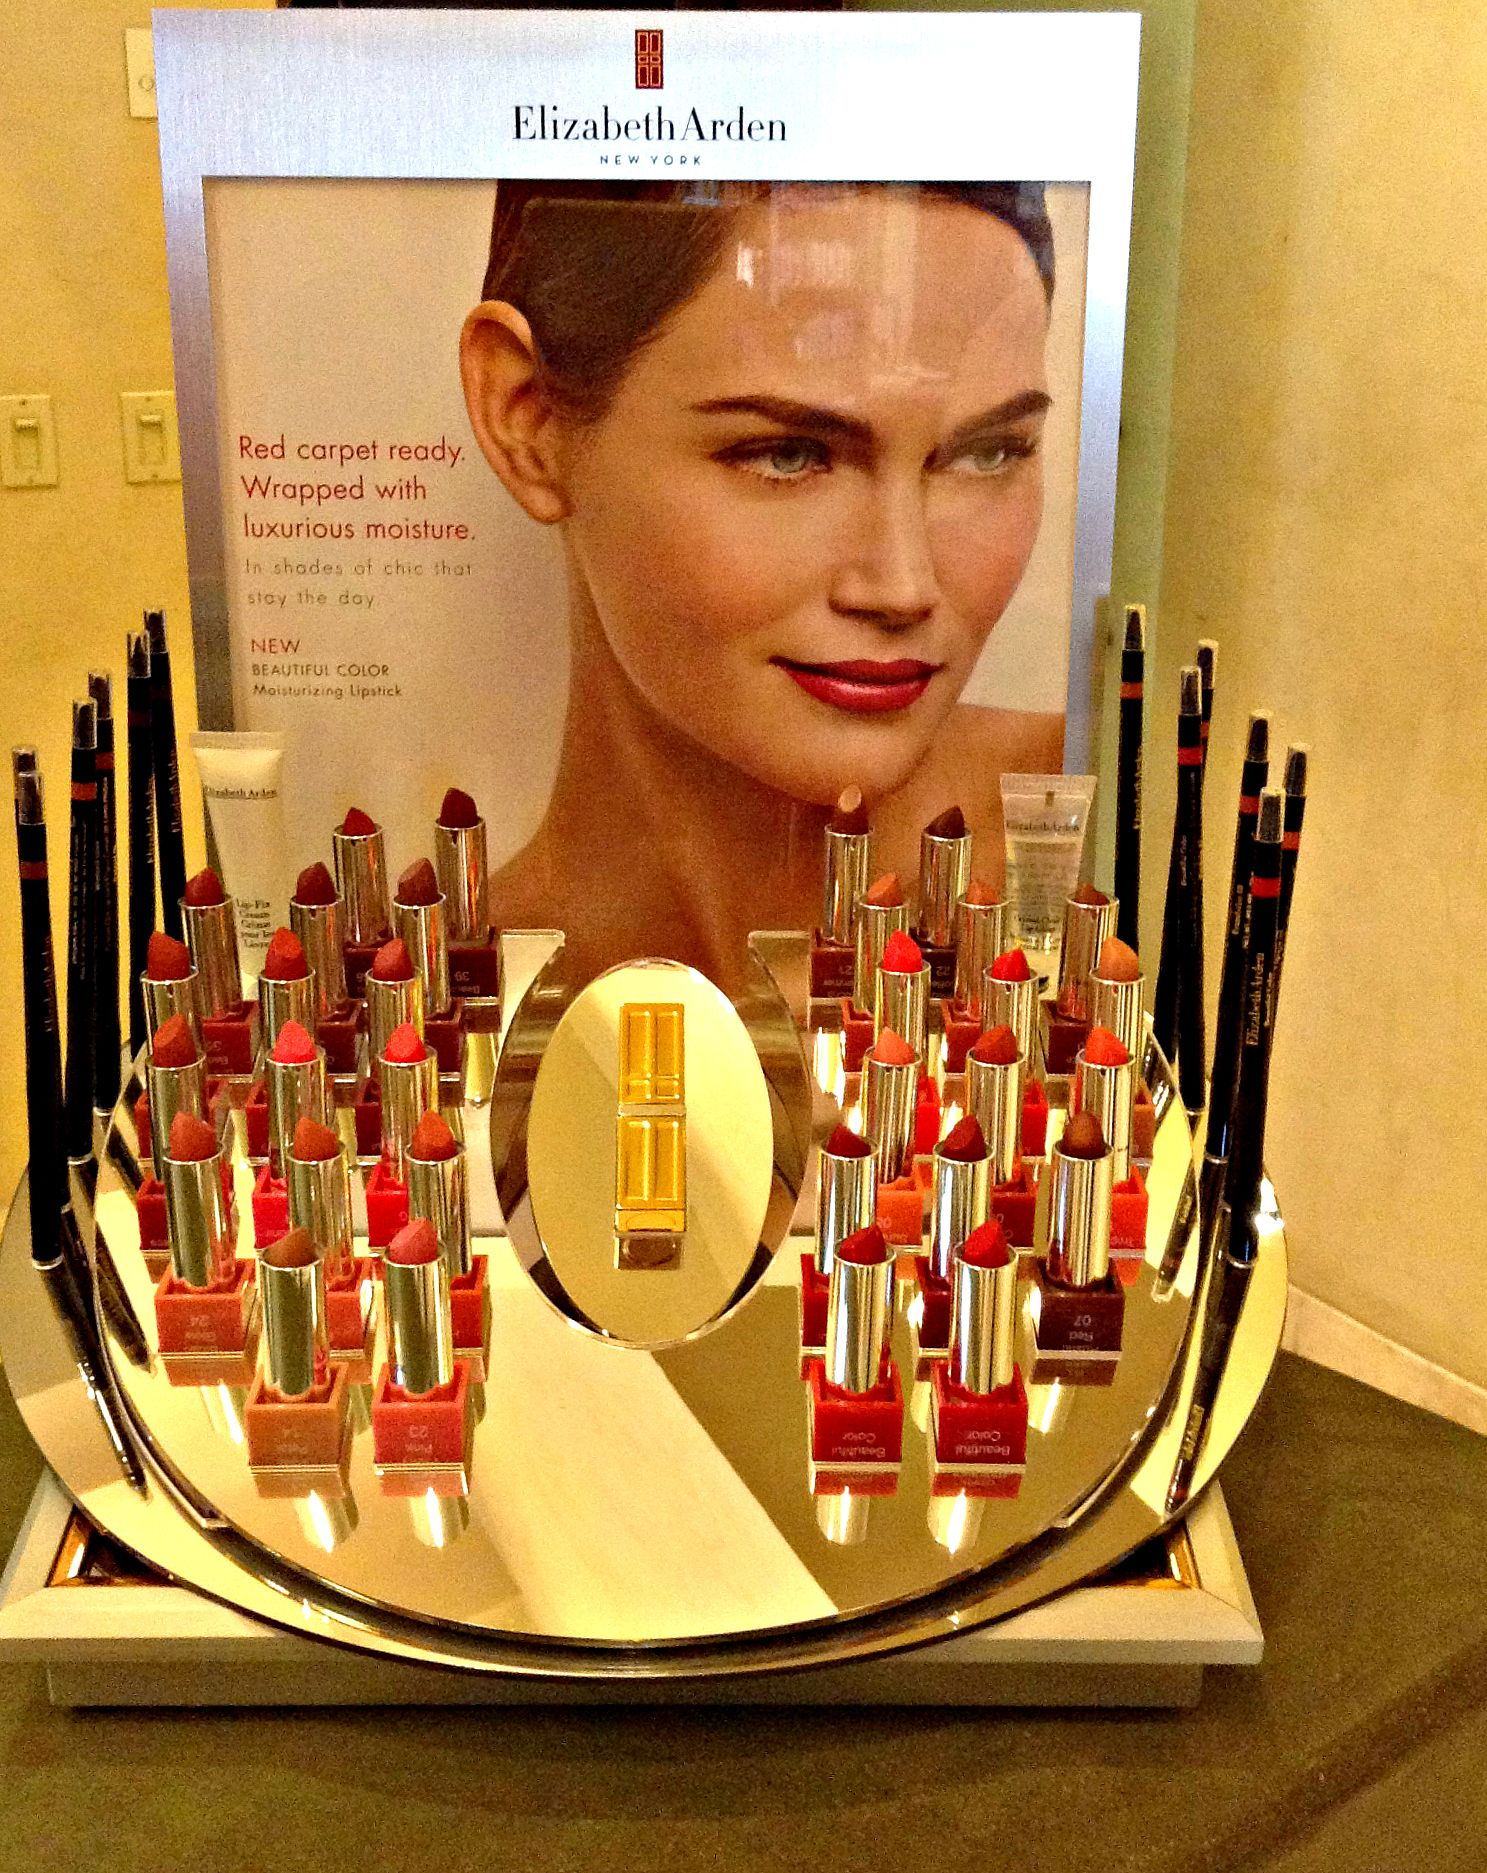 Lipstick Collection By Elizabeth Arden In The Red Door Spa The